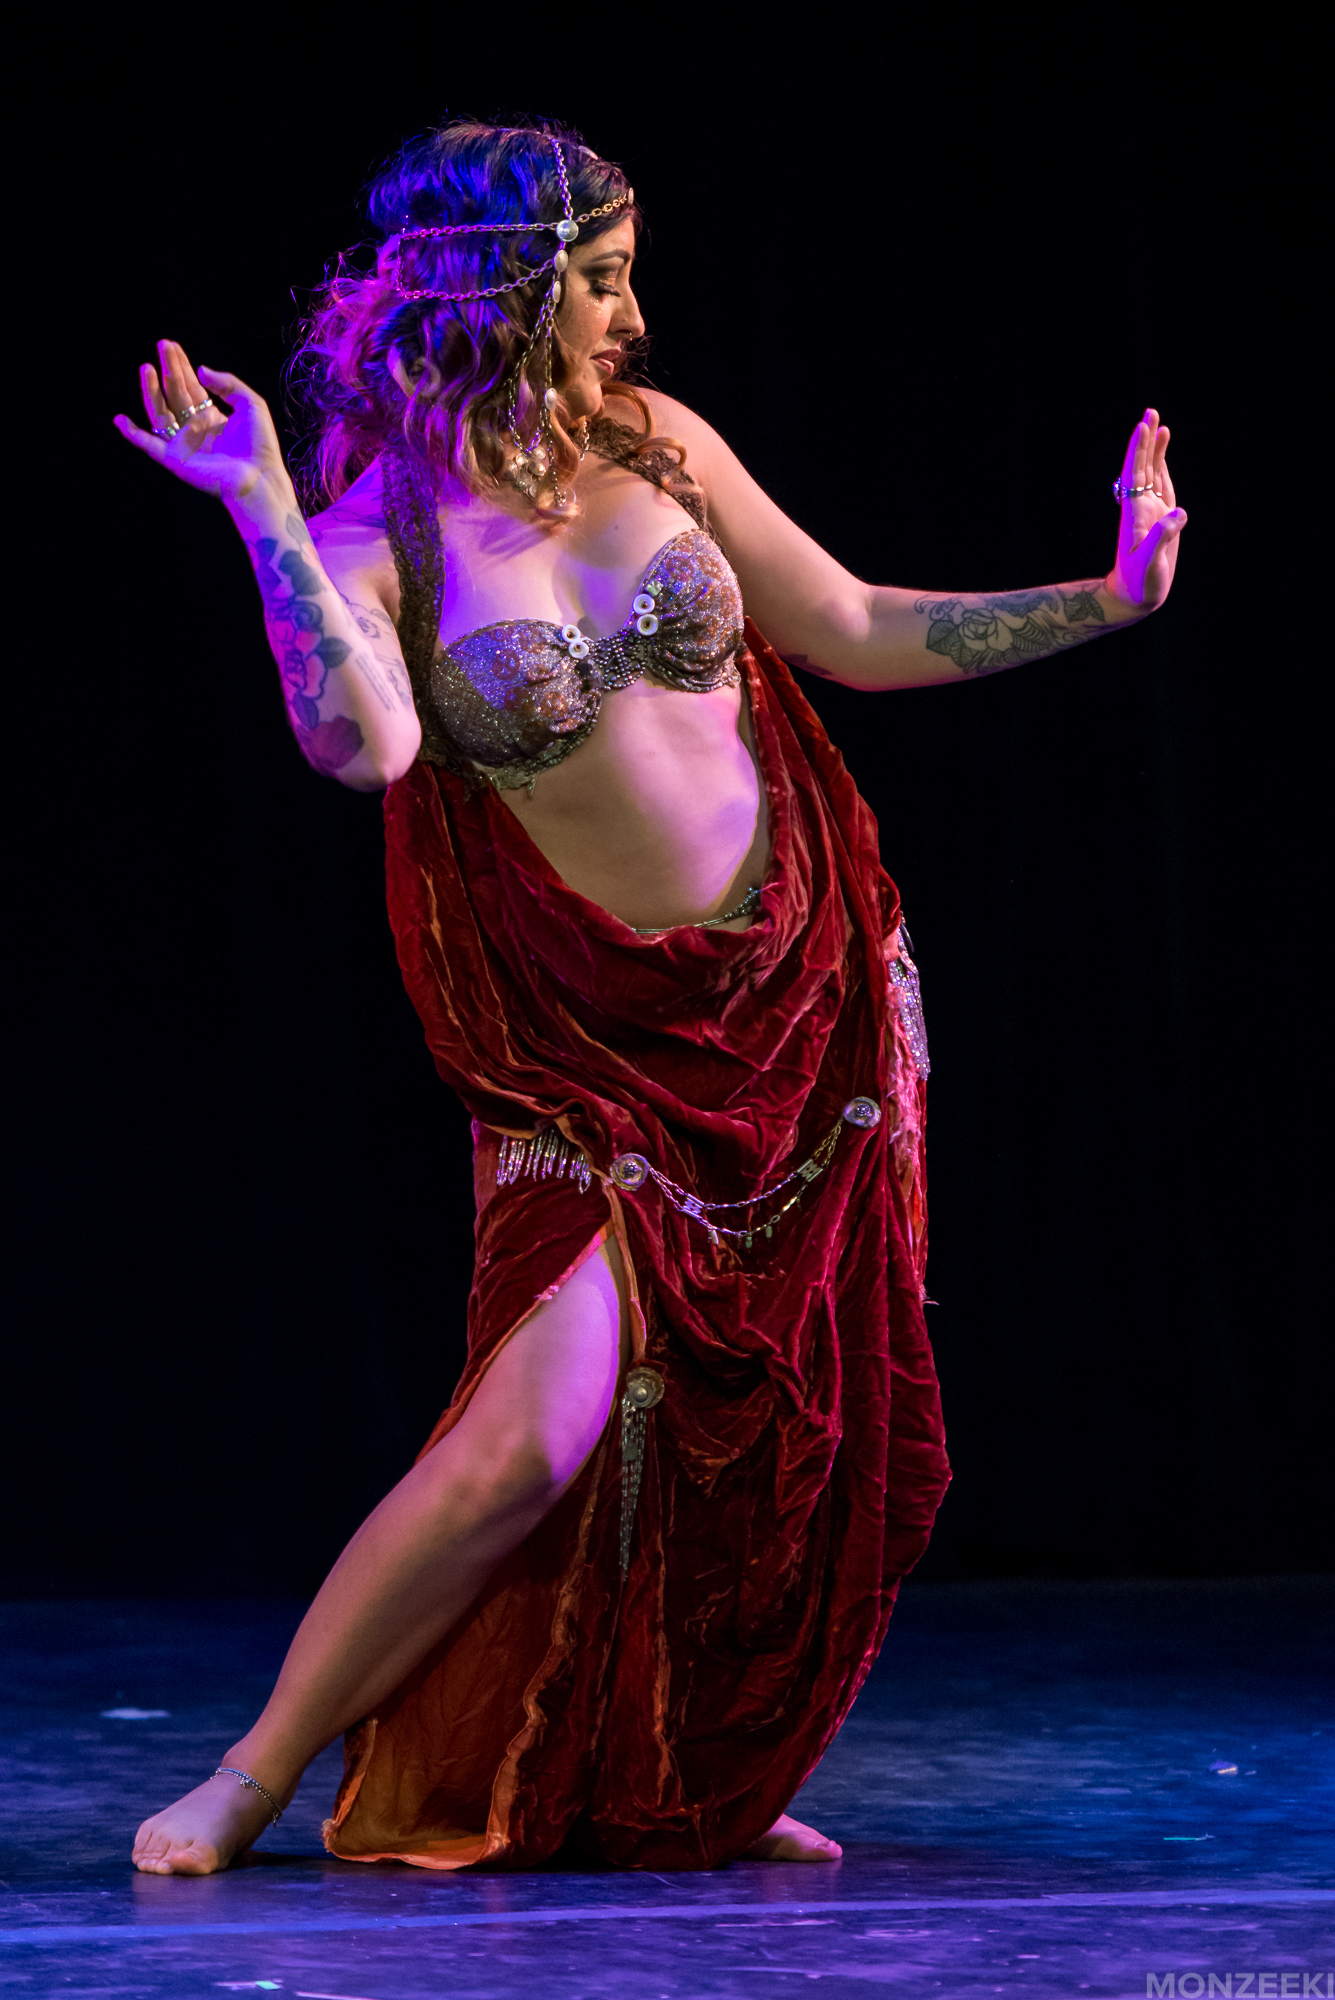 20161106-mirapiece-theater-nyc-3313.jpg